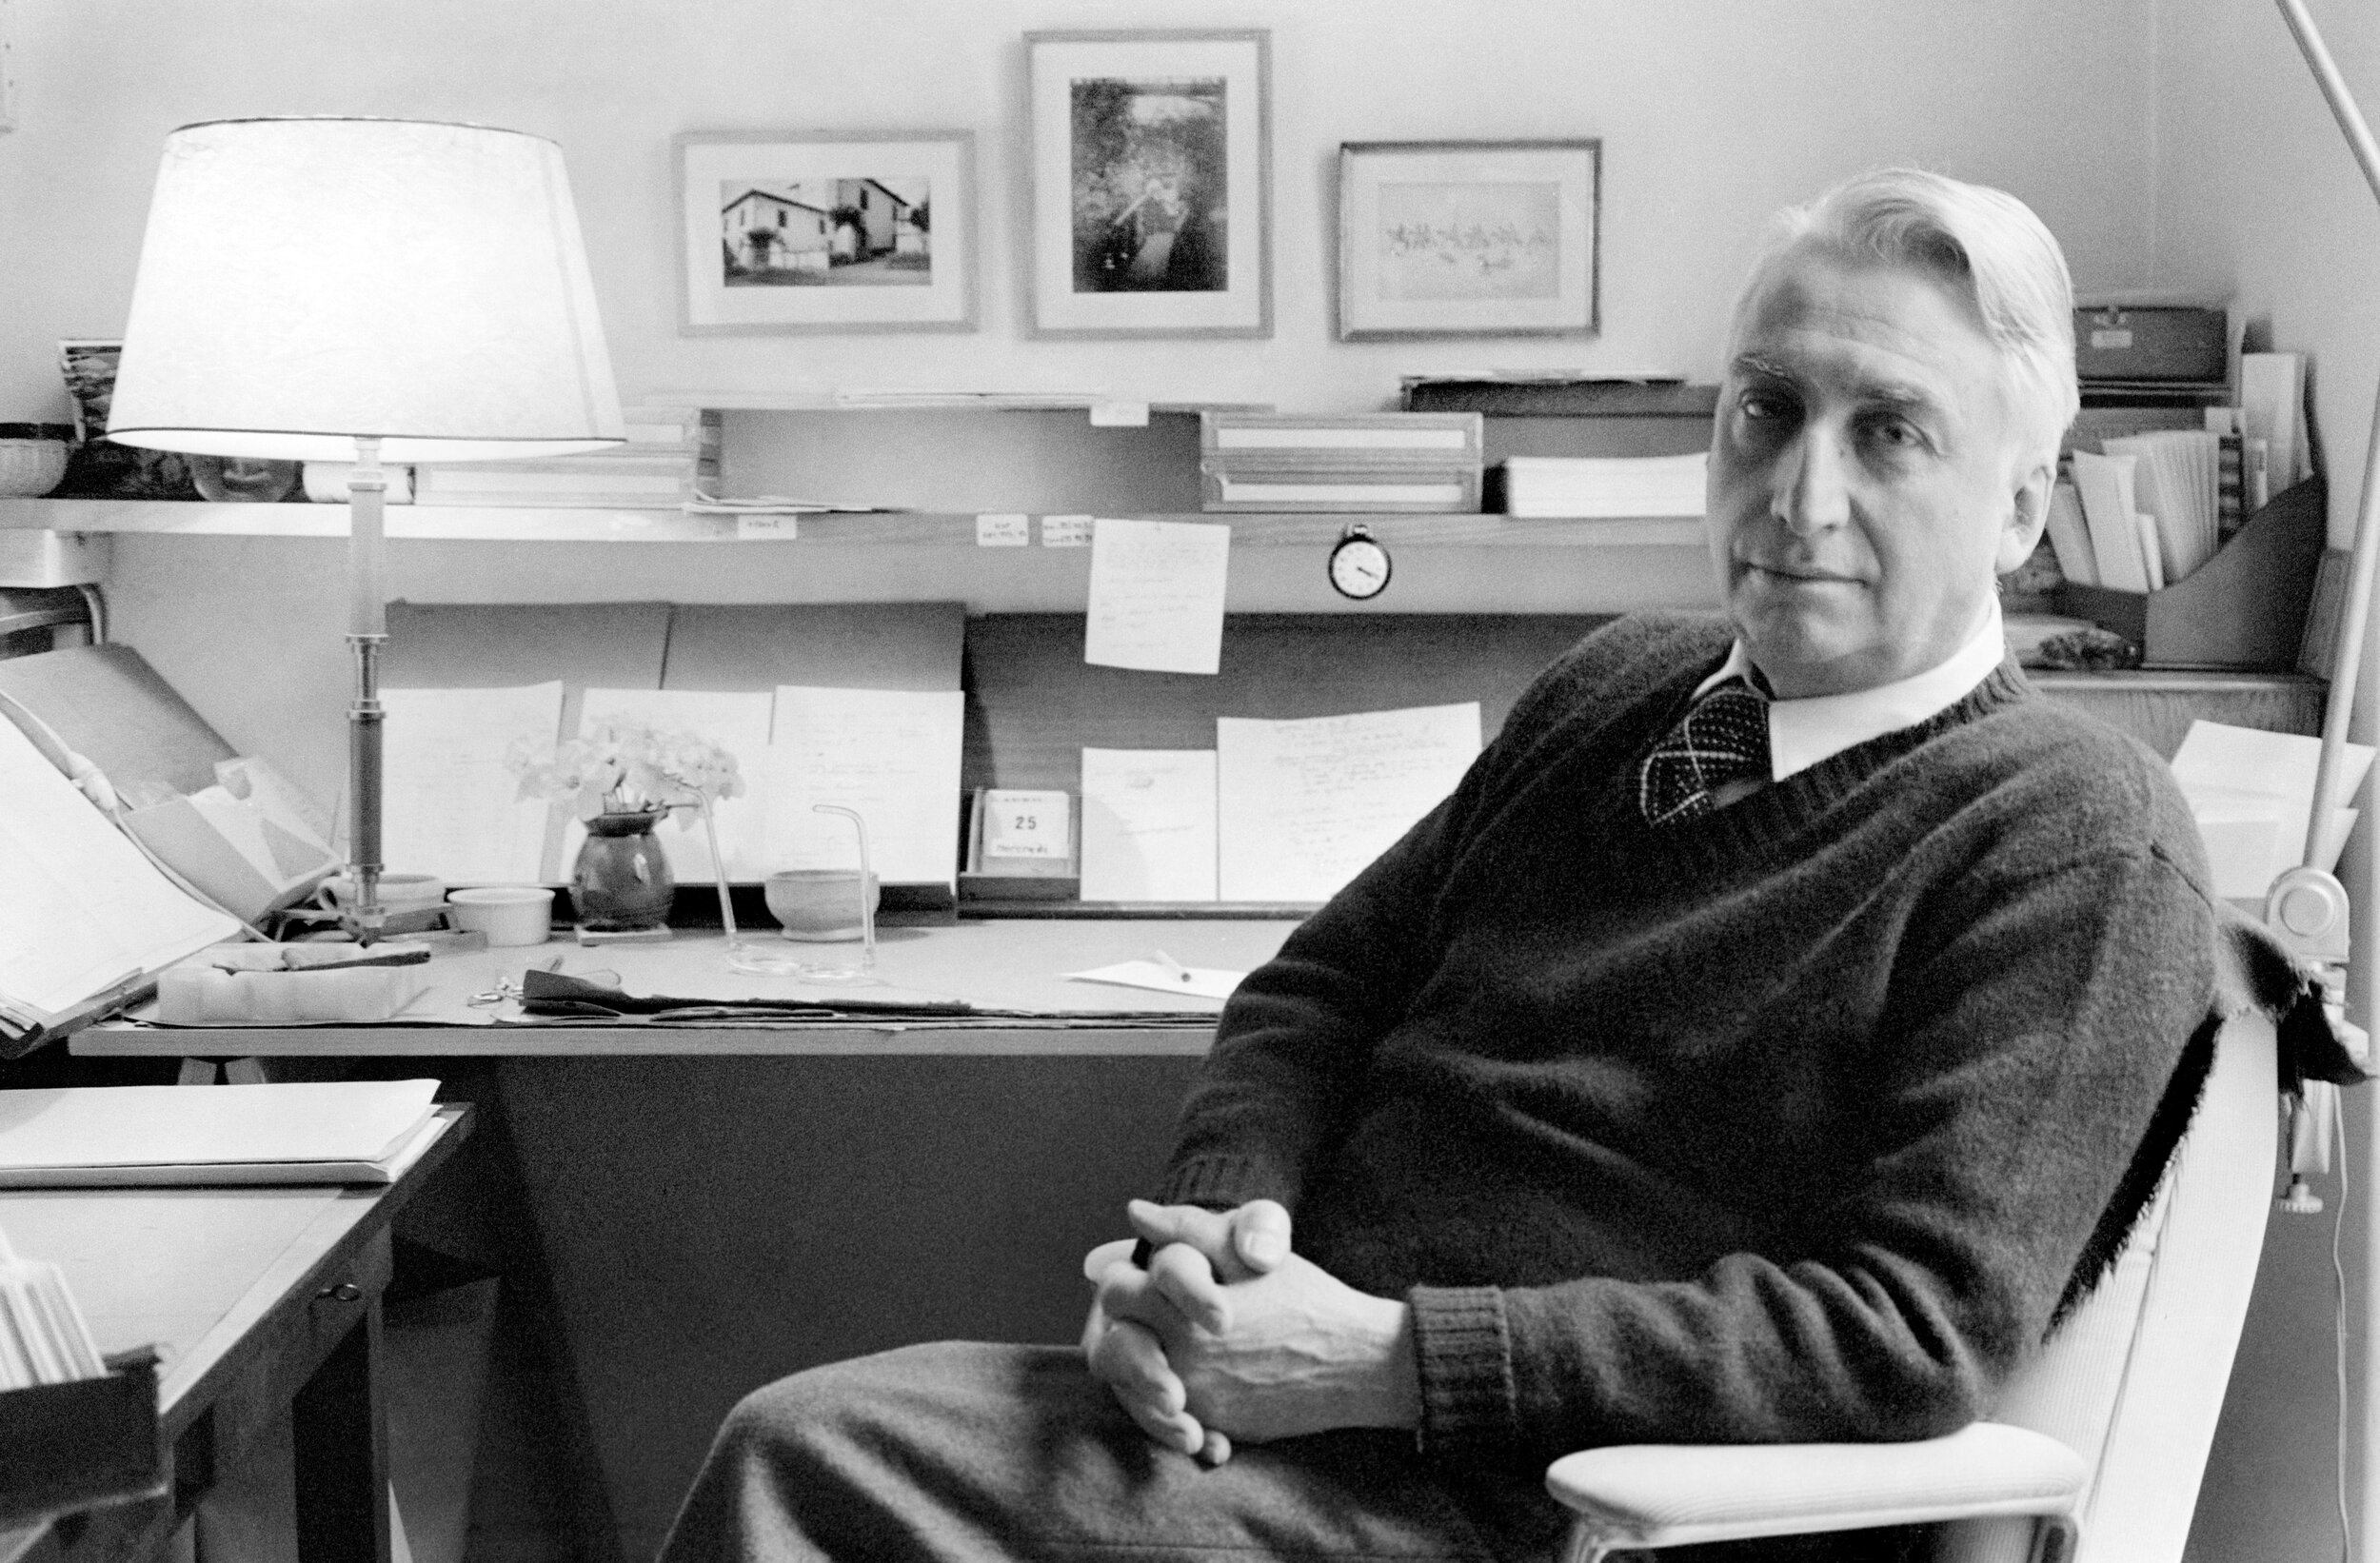 'Roland Barthes and Lost Images' - Light Matters Symposium, UTS, Sydney, Aug 2019